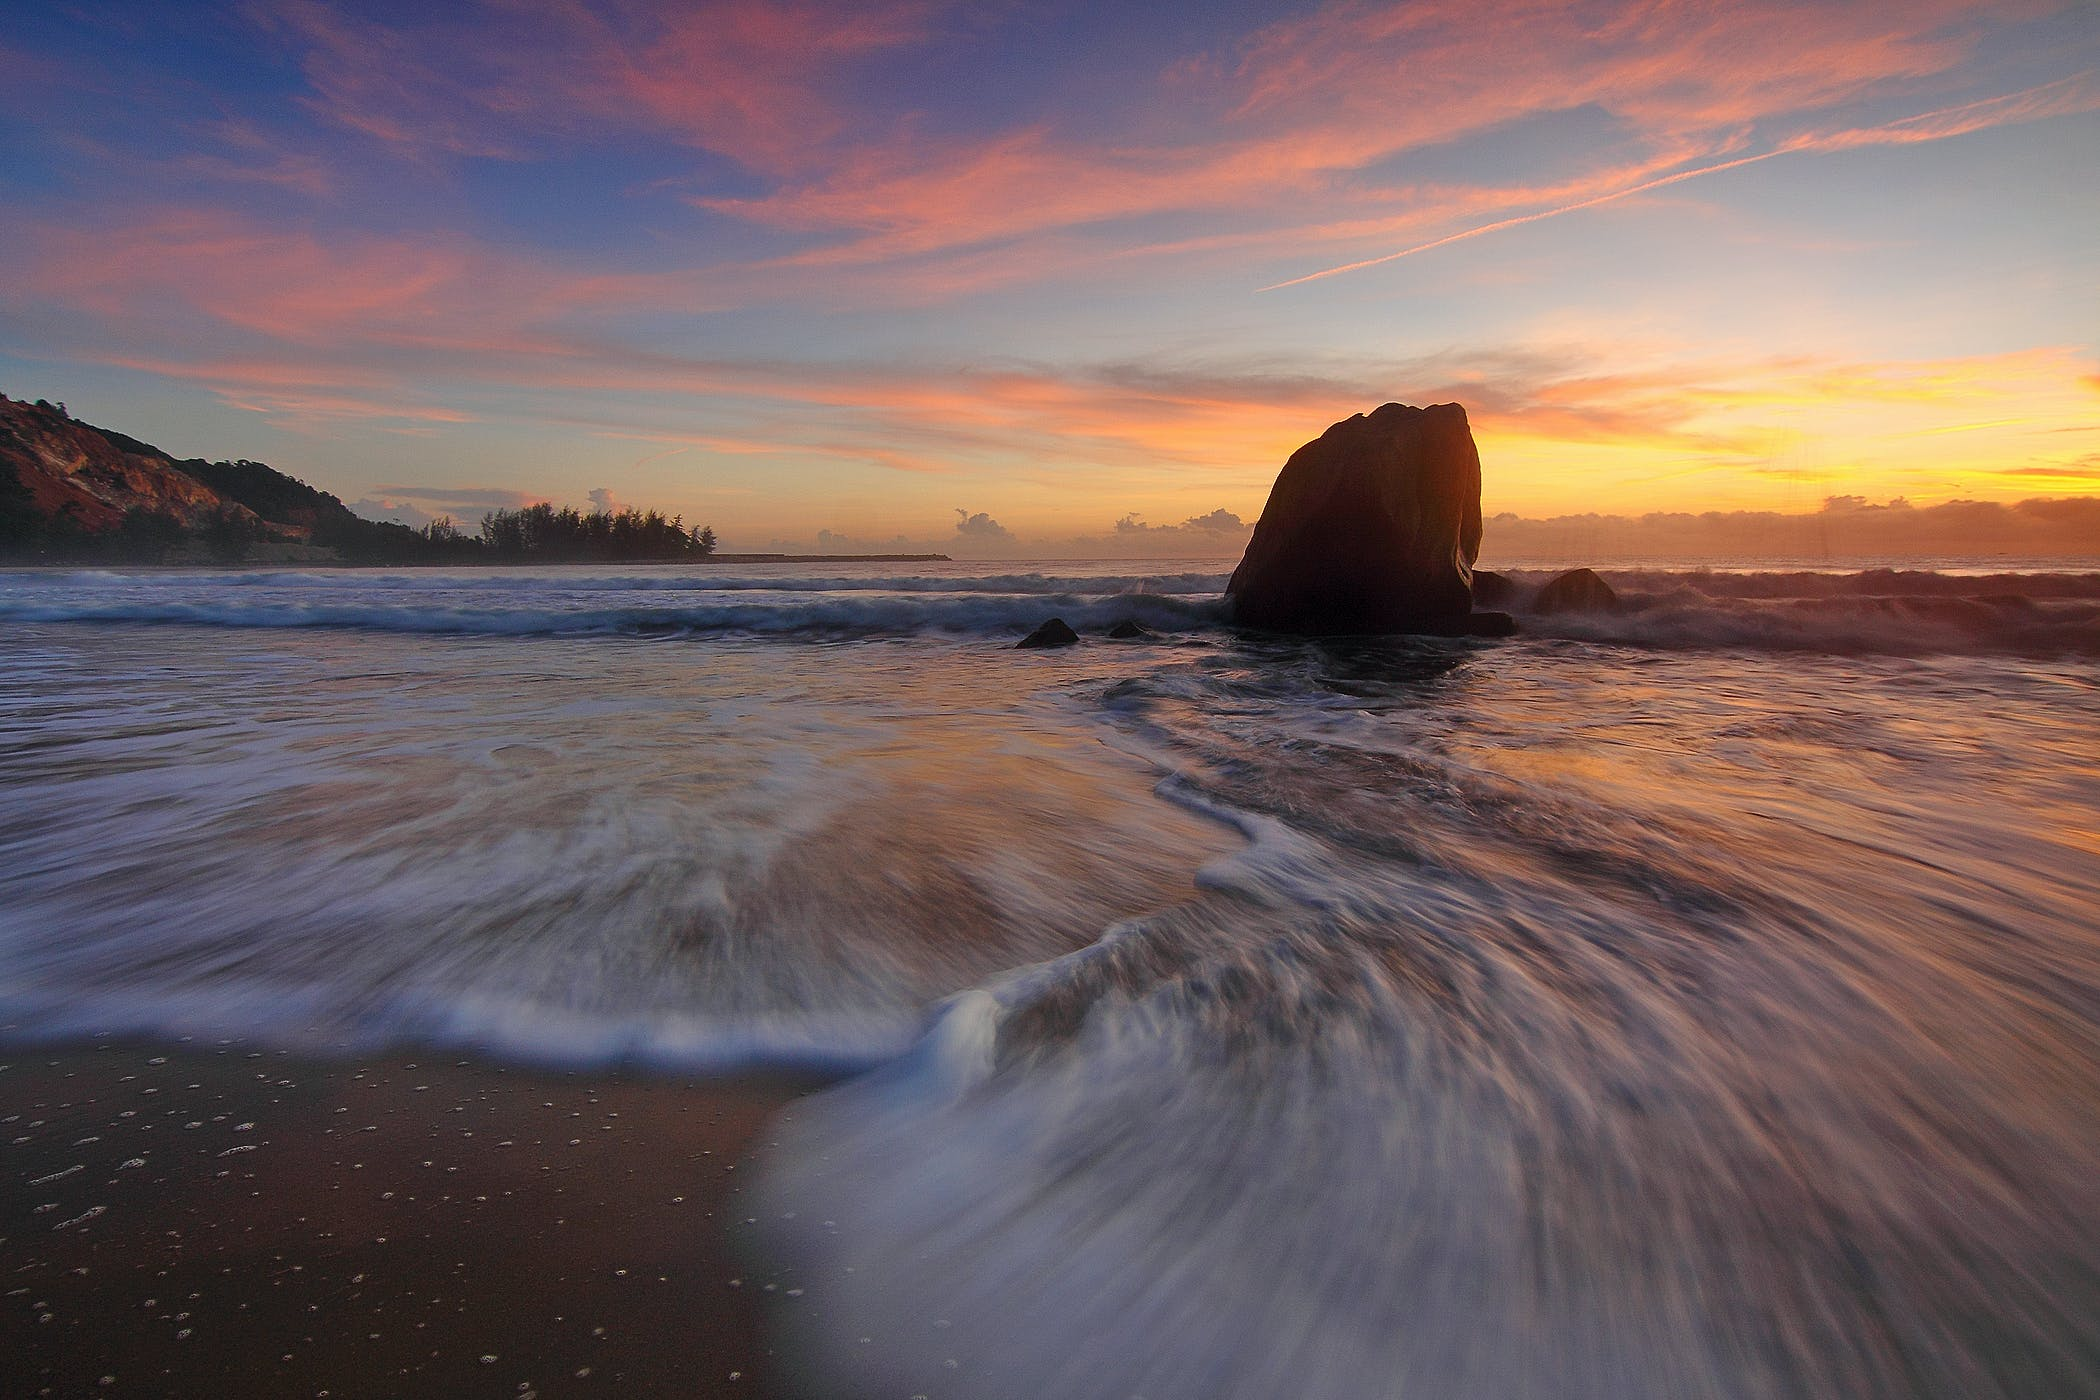 Time-lapse Photography of Waves Rushed to Shore during Golden Hour